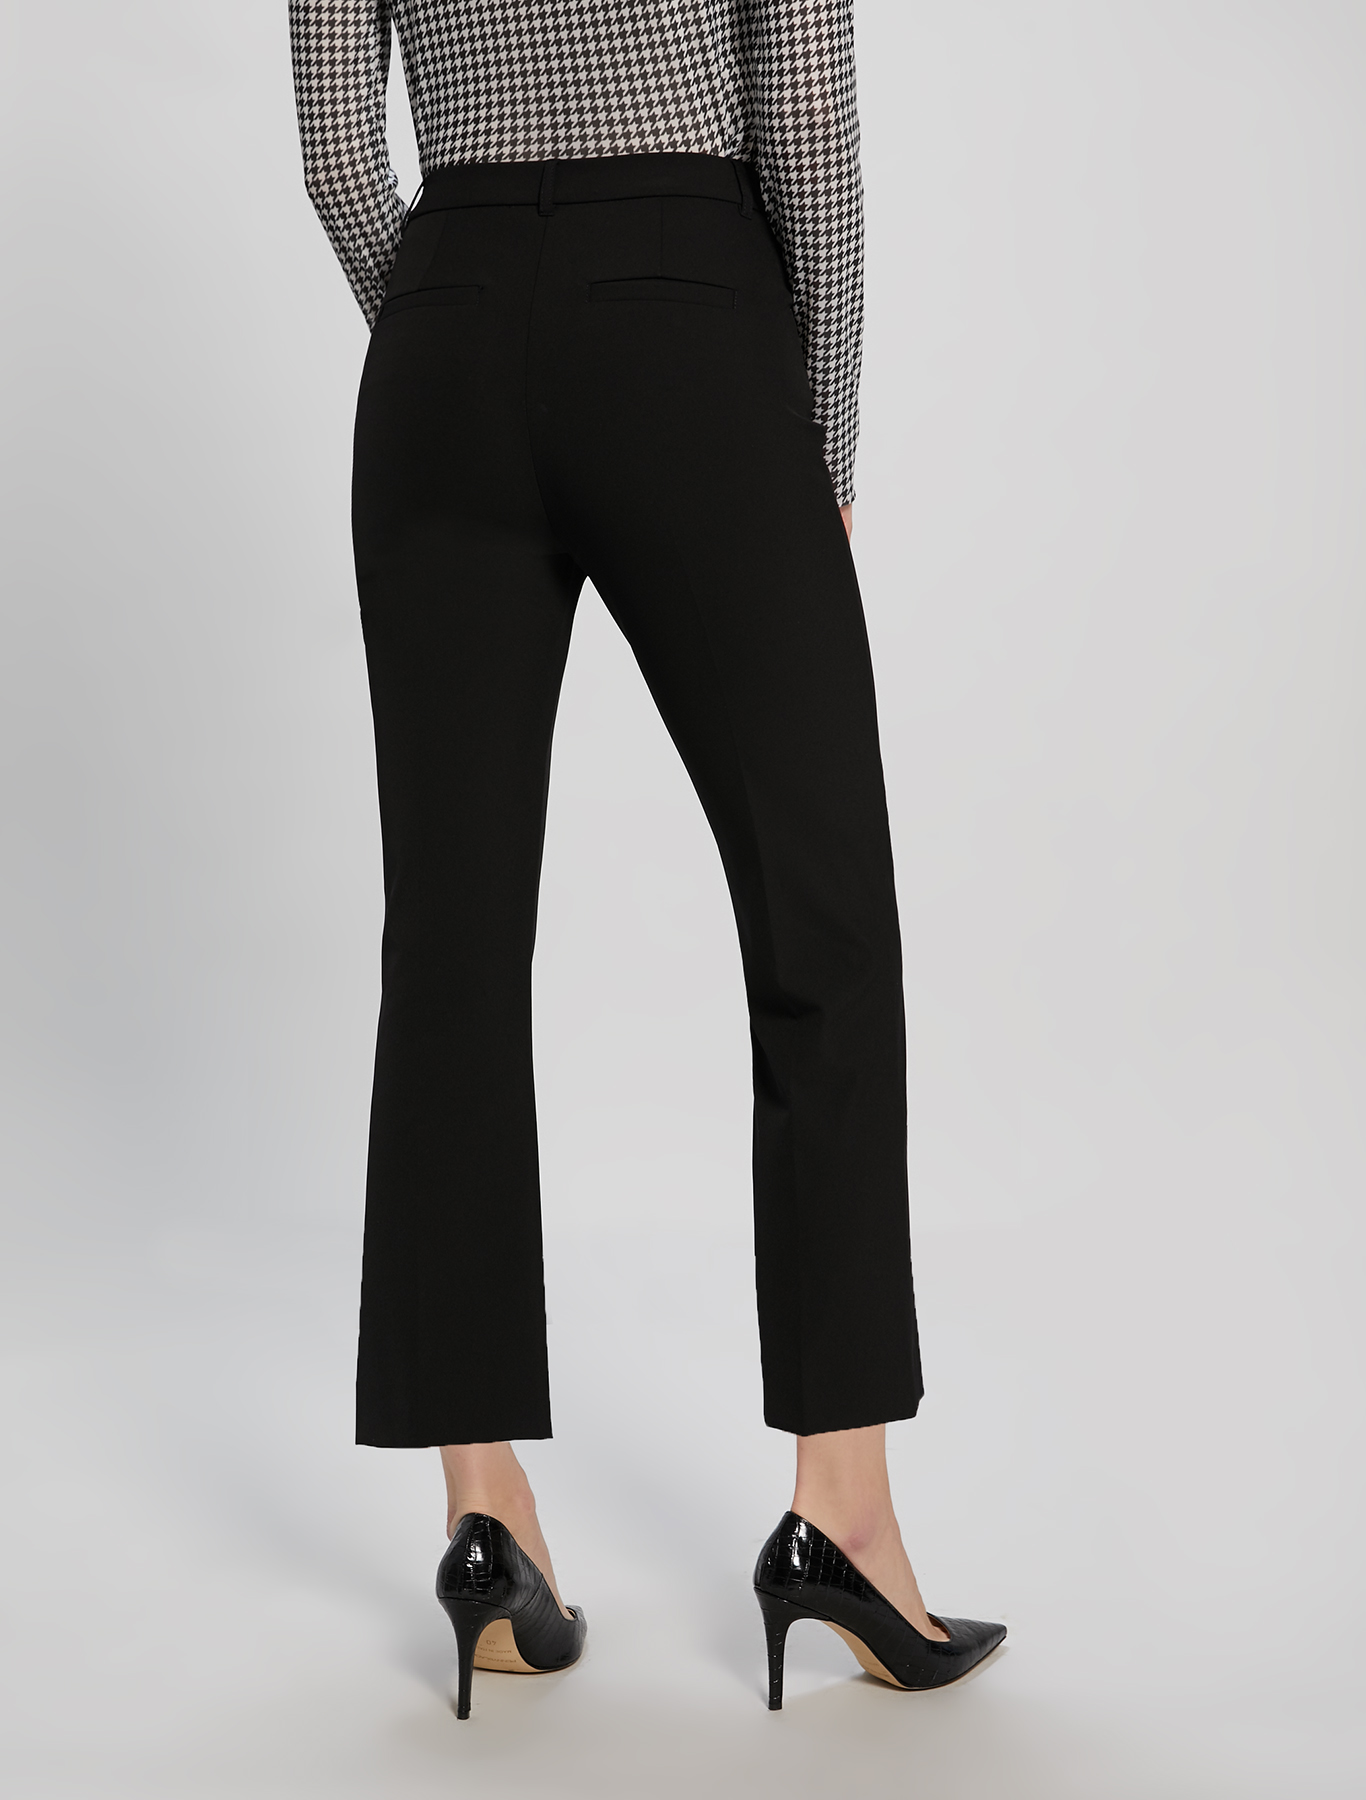 Kick-flare trousers - black - pennyblack